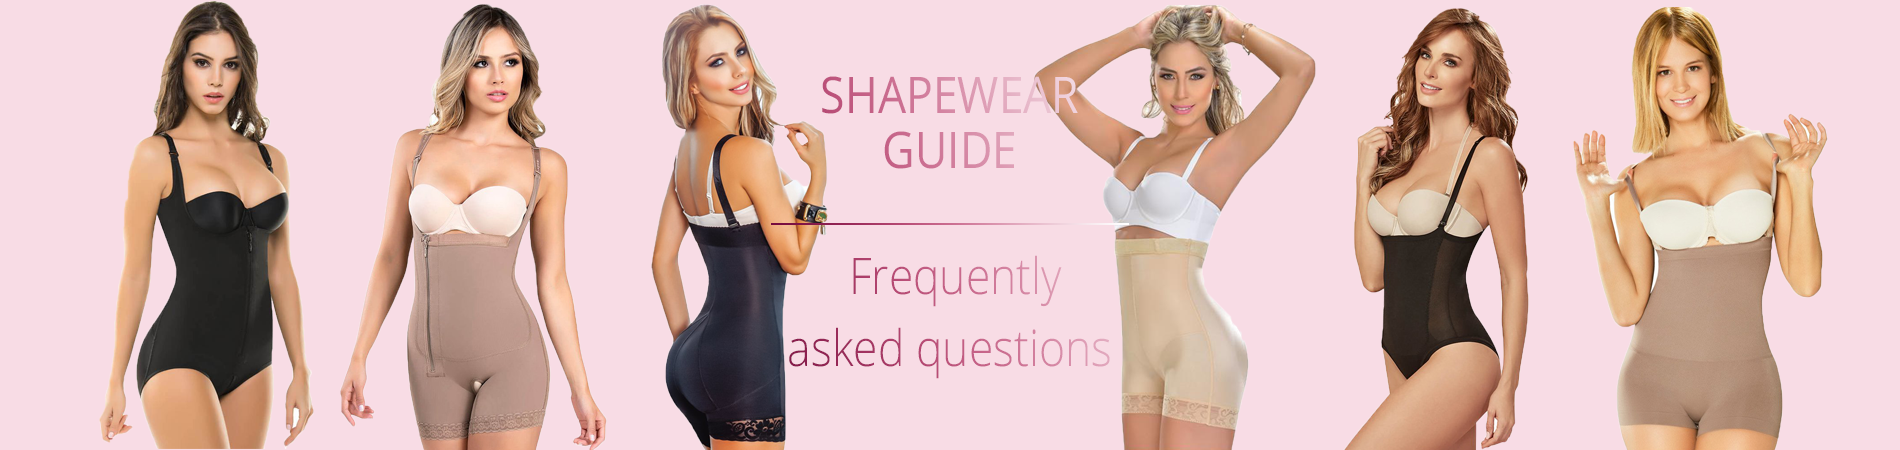 Frequently Asked Questions About Shapewear